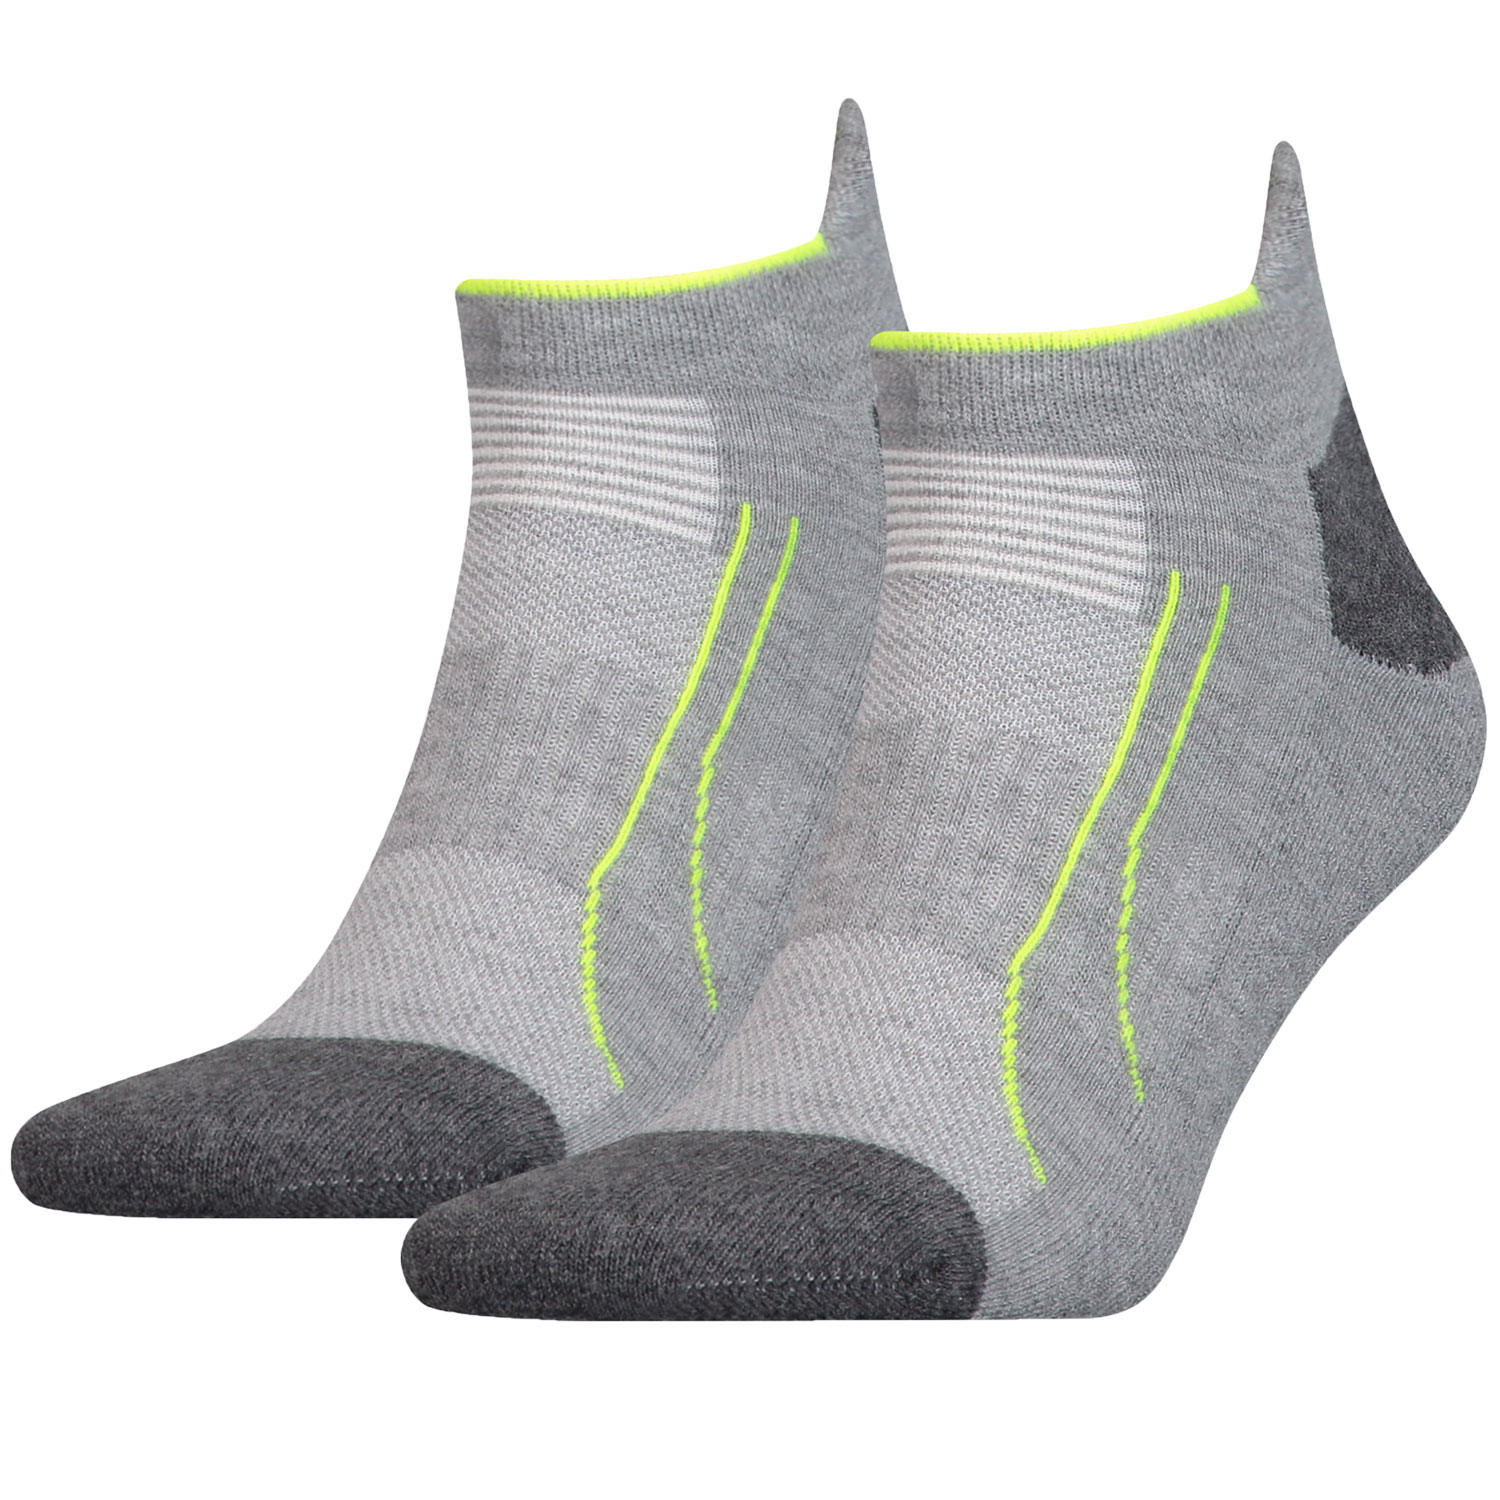 Puma Performance Train Sneaker 6 Paar Füßlinge  Sportsocken Allround Sports – Bild 4